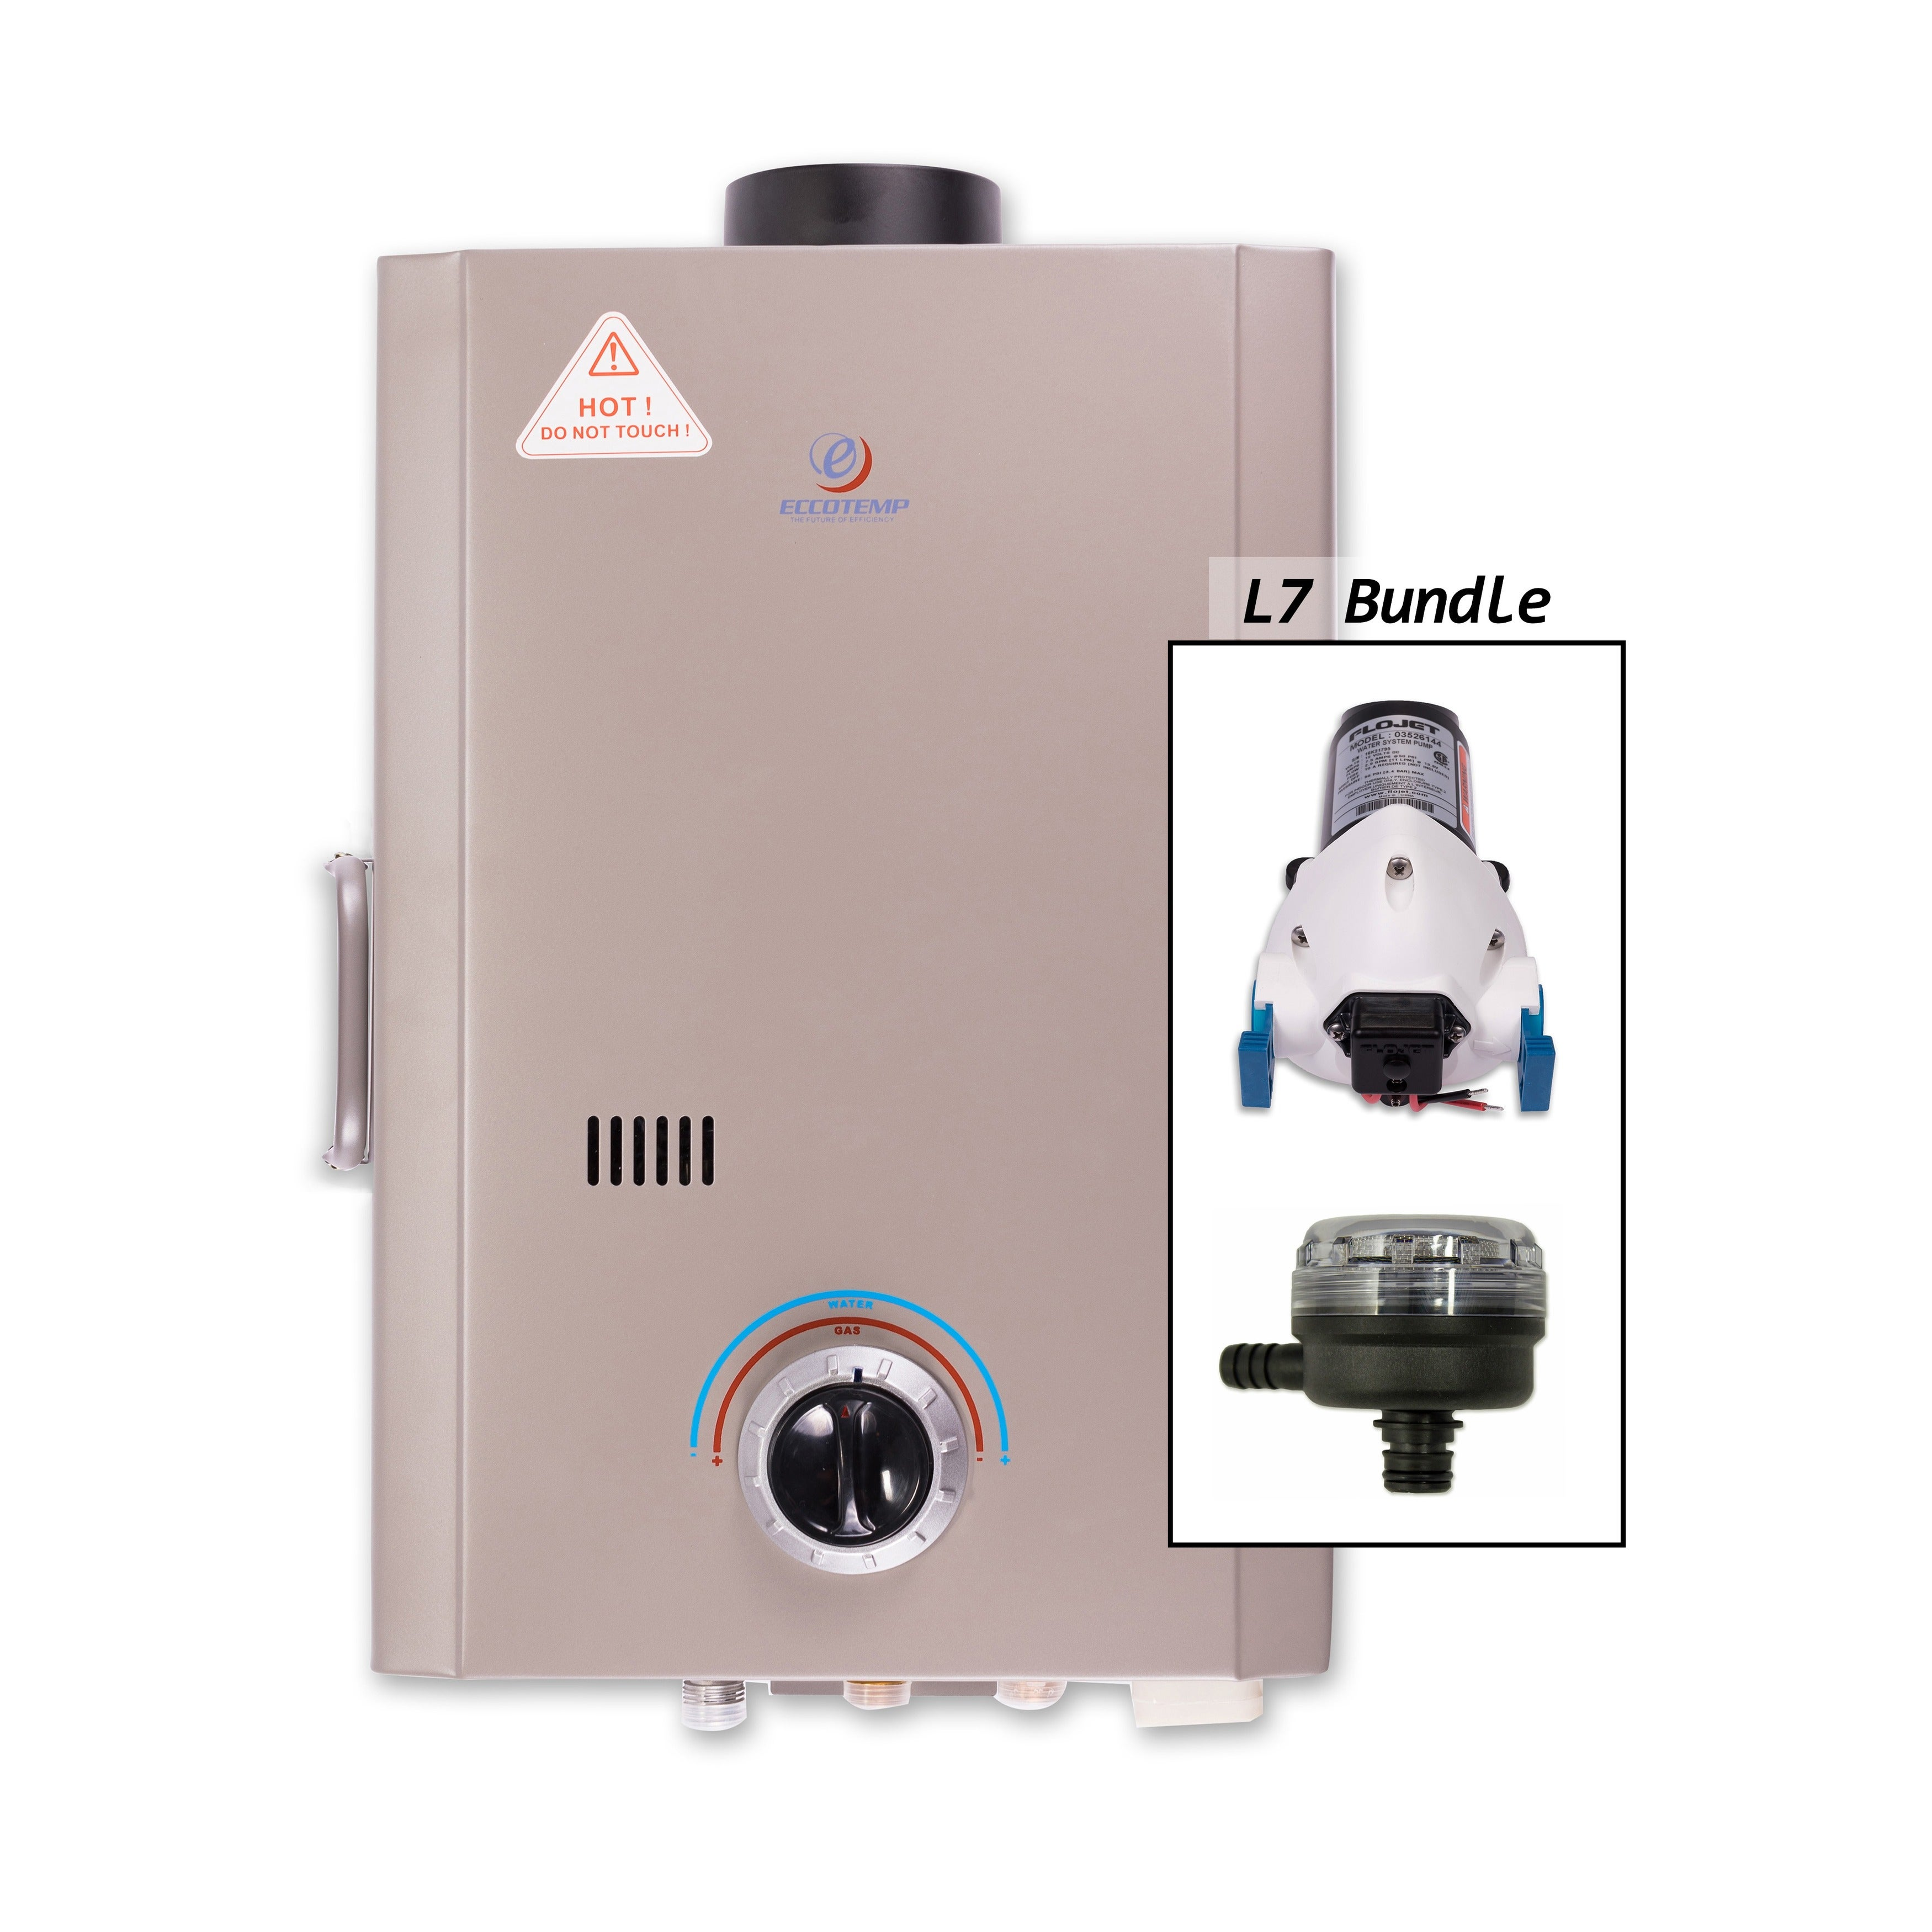 Eccotemp L7 Tankless Water Heater with Flojet Pump and St...